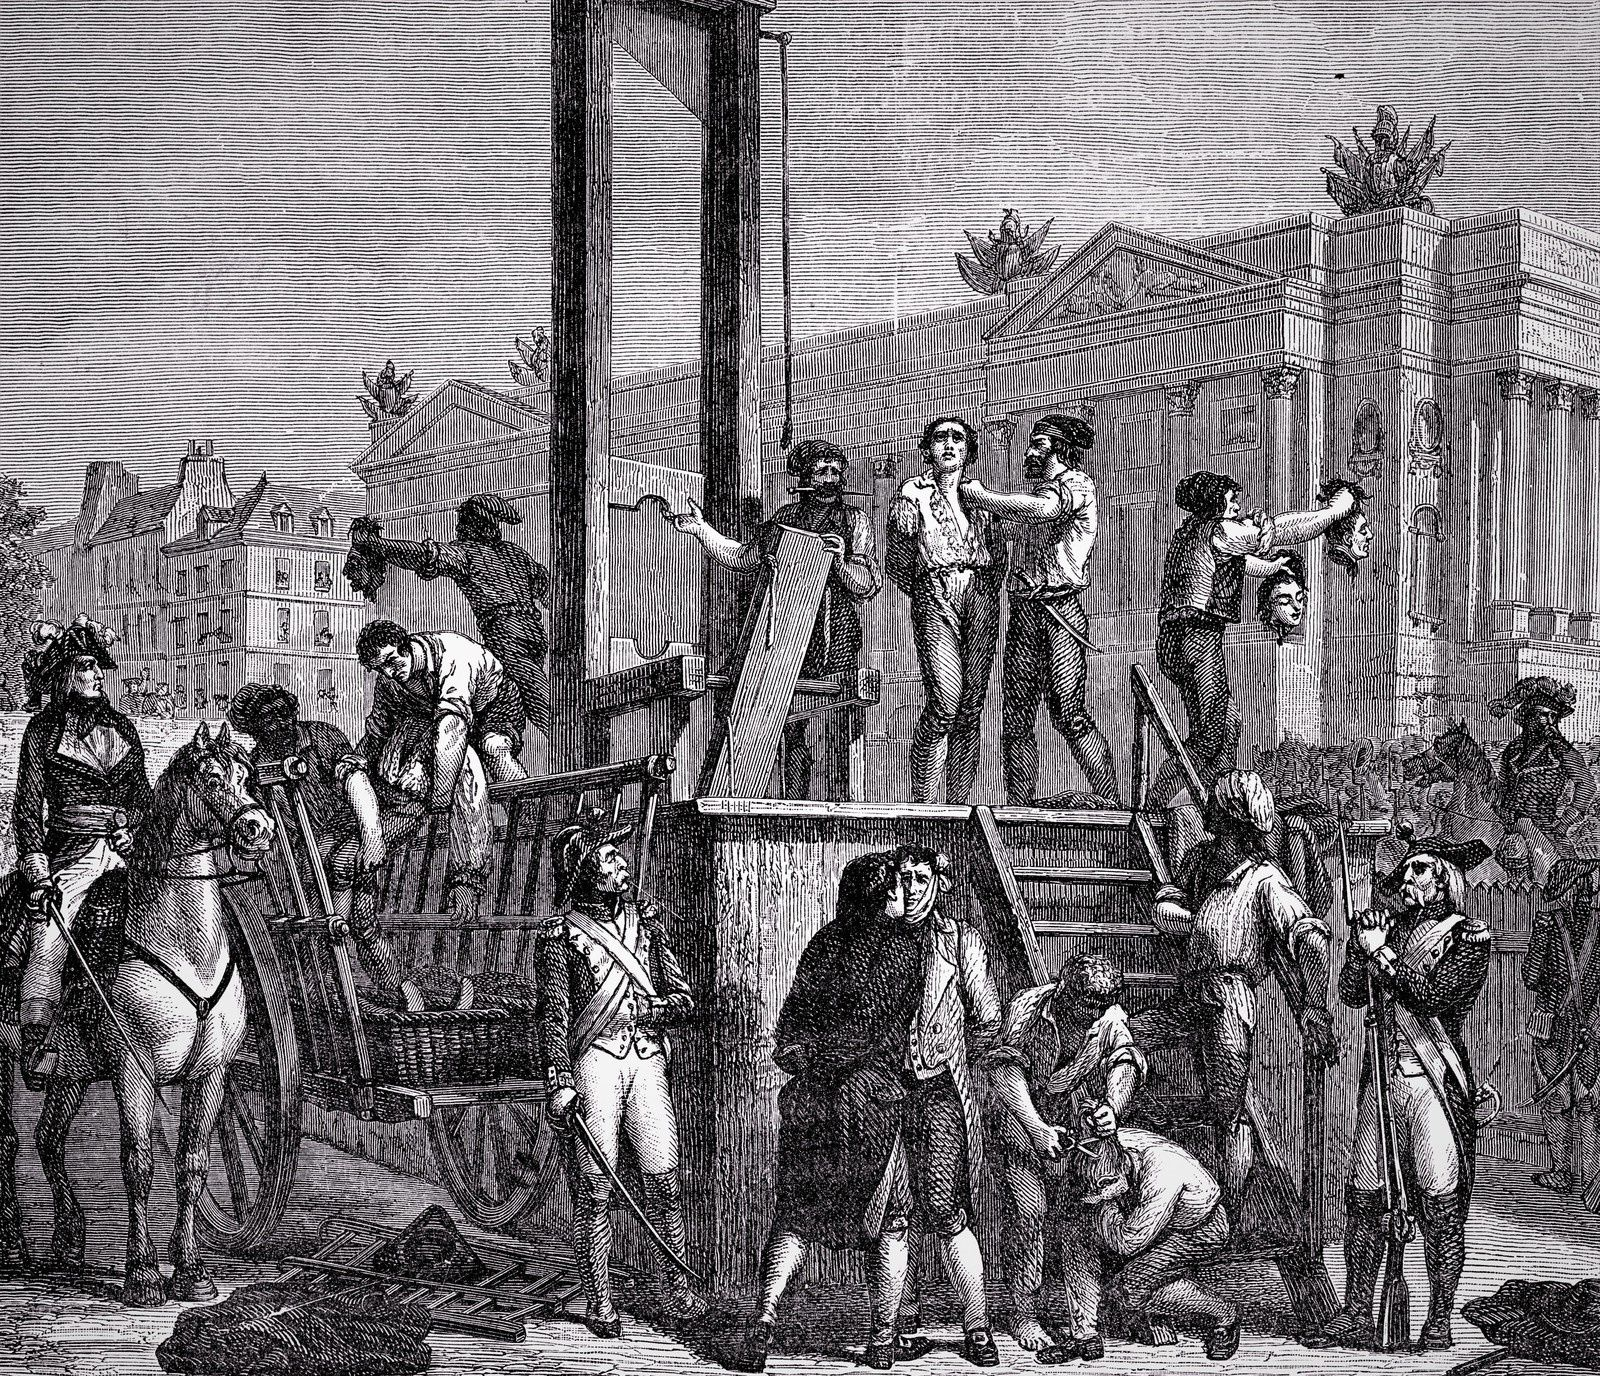 Guillotine. Robespierre.